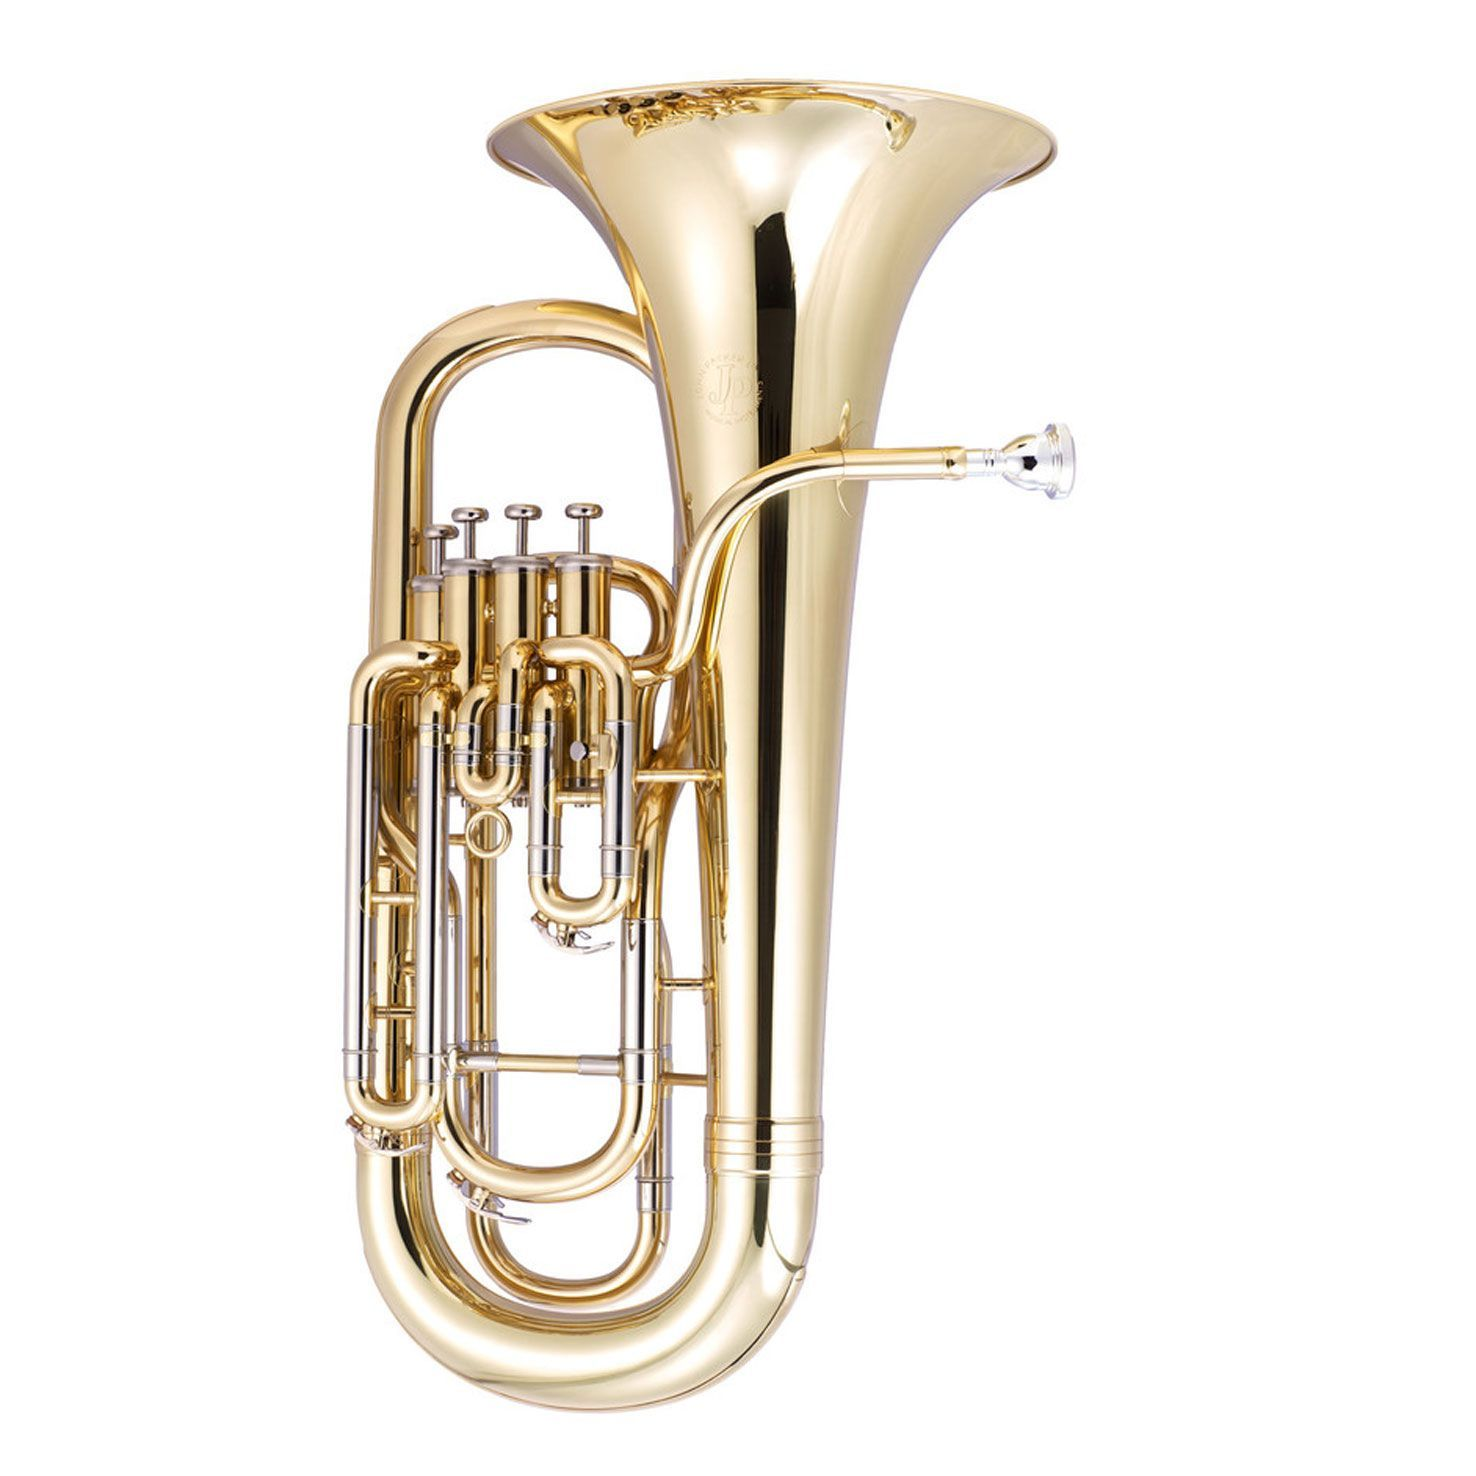 JP174IL Euphonium with in-line valves